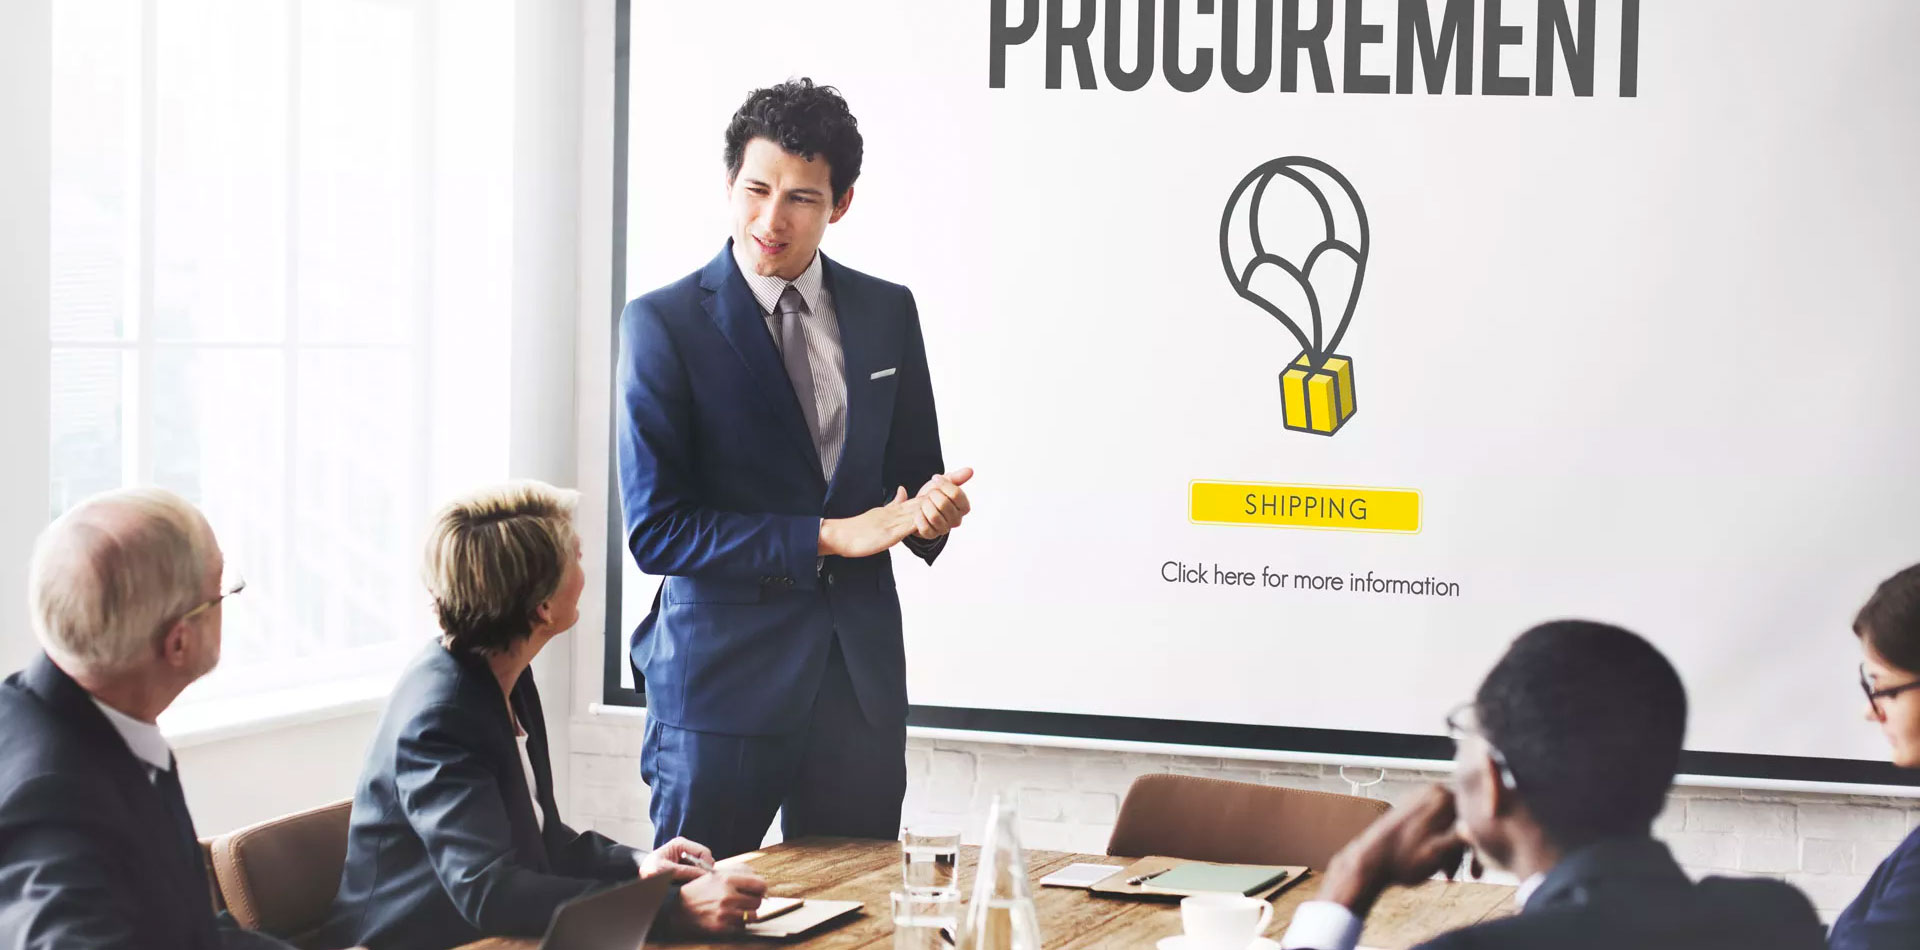 hardware and software procurement services from Nxt IT